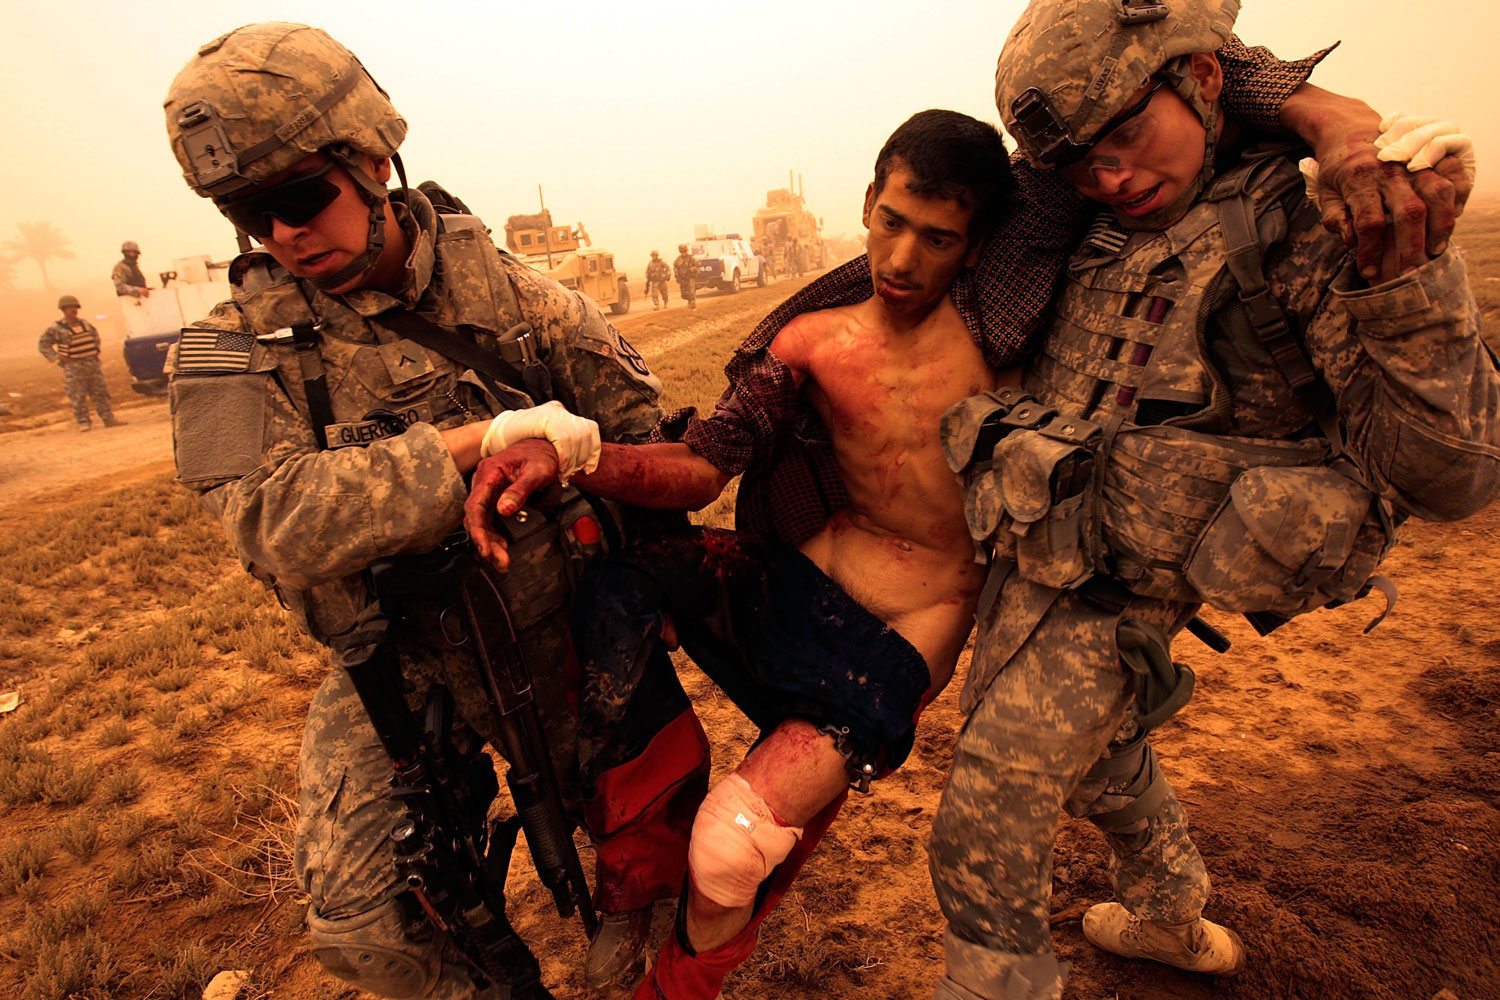 Baghdad, Iraq, May 16, 2008:  In the orange fog of an Iraqi sandstorm, PFC. Joshua Guerrero (L) and Private Aaron Livas, US troops of the 2nd Battalion, 30th Infantry Regiment of the 10th Mountain Division carry a wounded Iraqi man who started running from their platoon during a routine morning patrol and was shot.